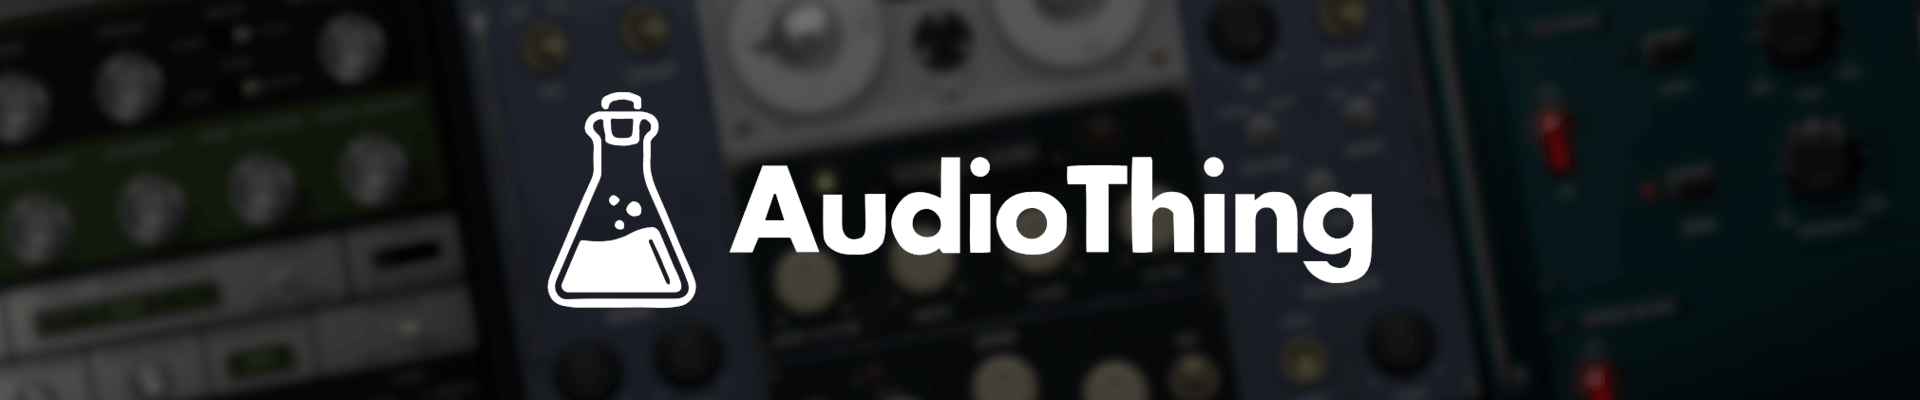 AudioThing Banner